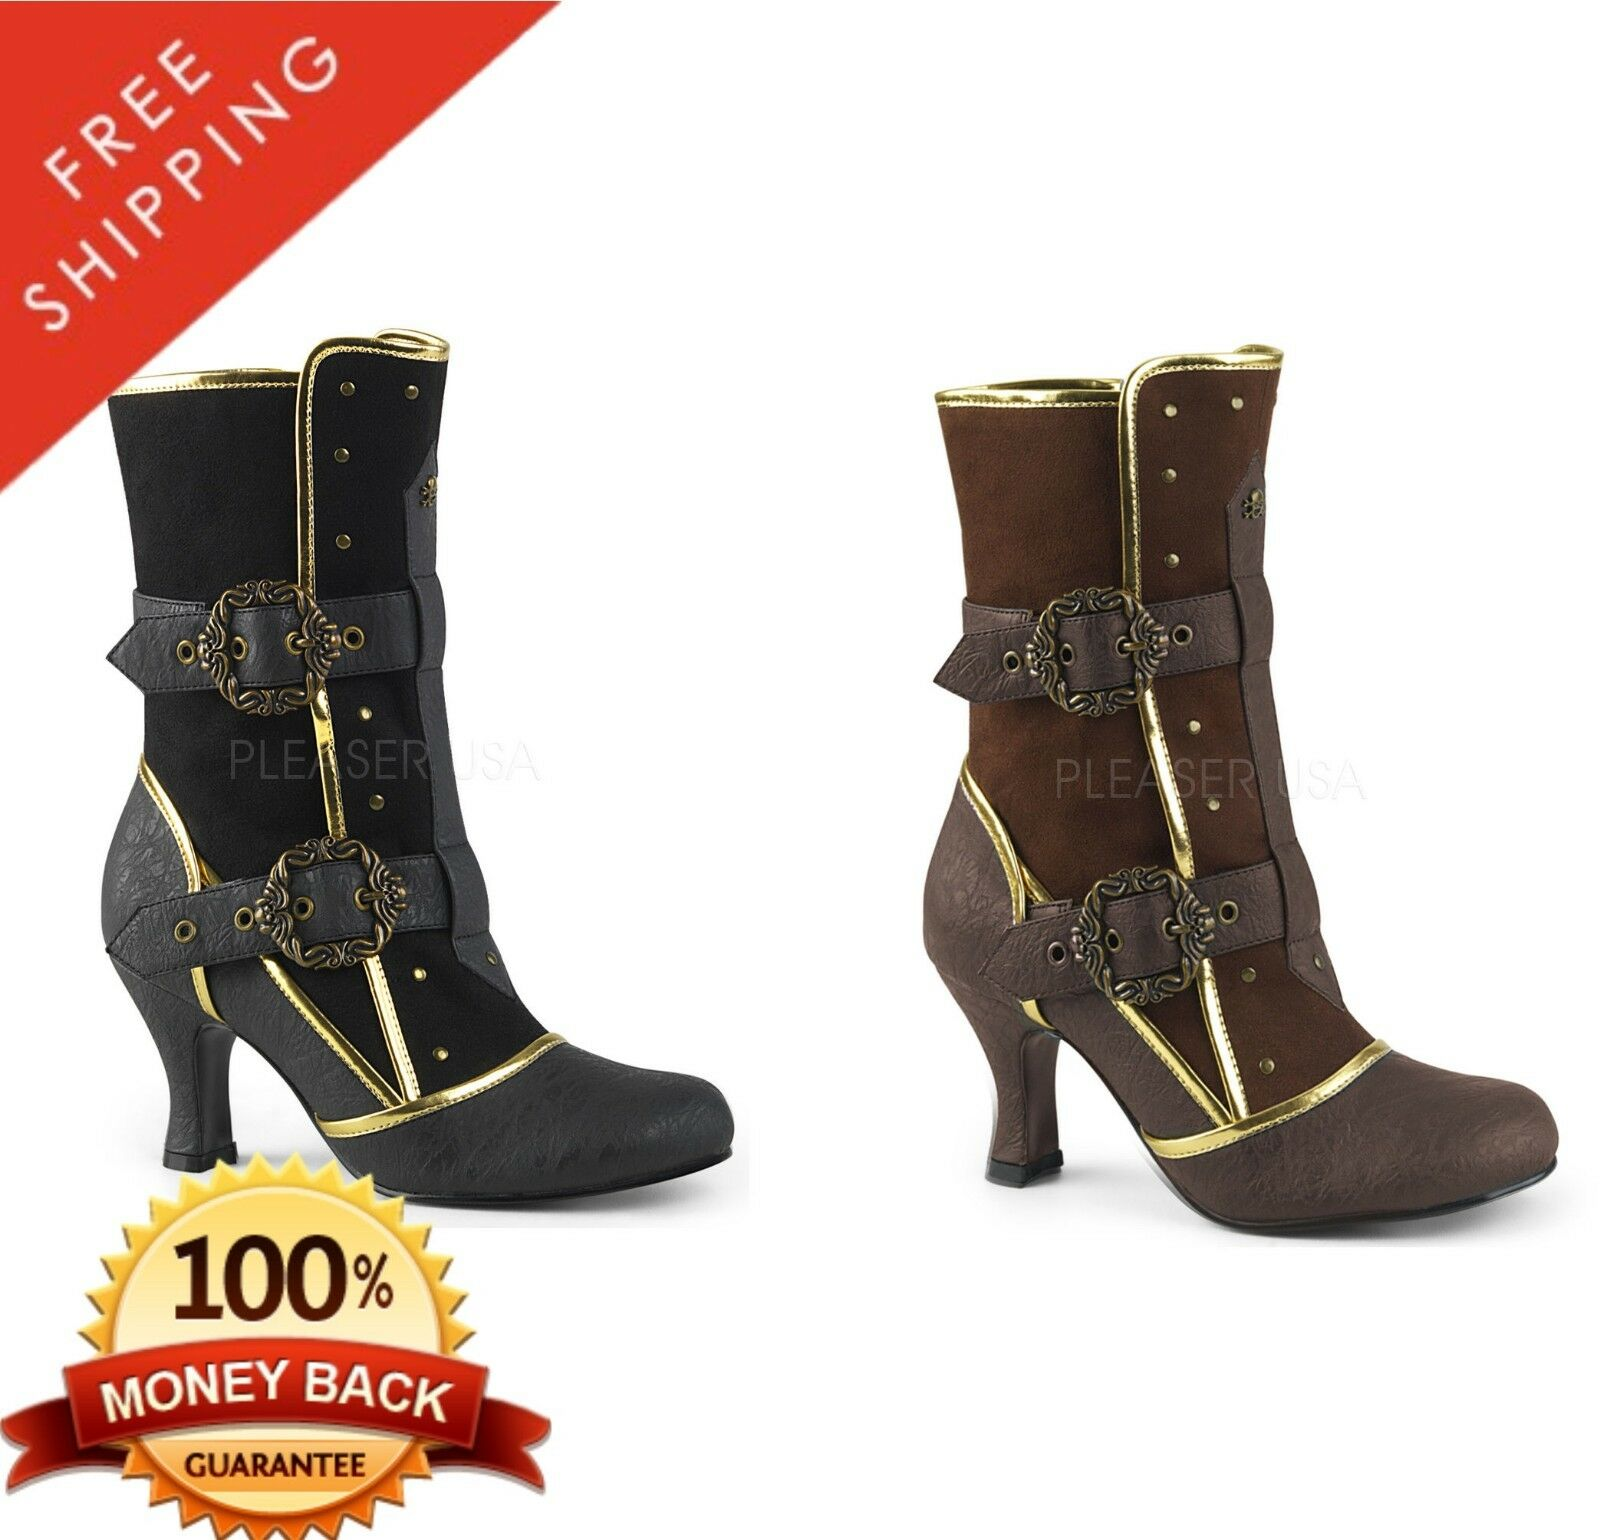 Pleaser Funtasma MATEY-205 Women's Round Toe Ankle Boot Featuring gold Trims